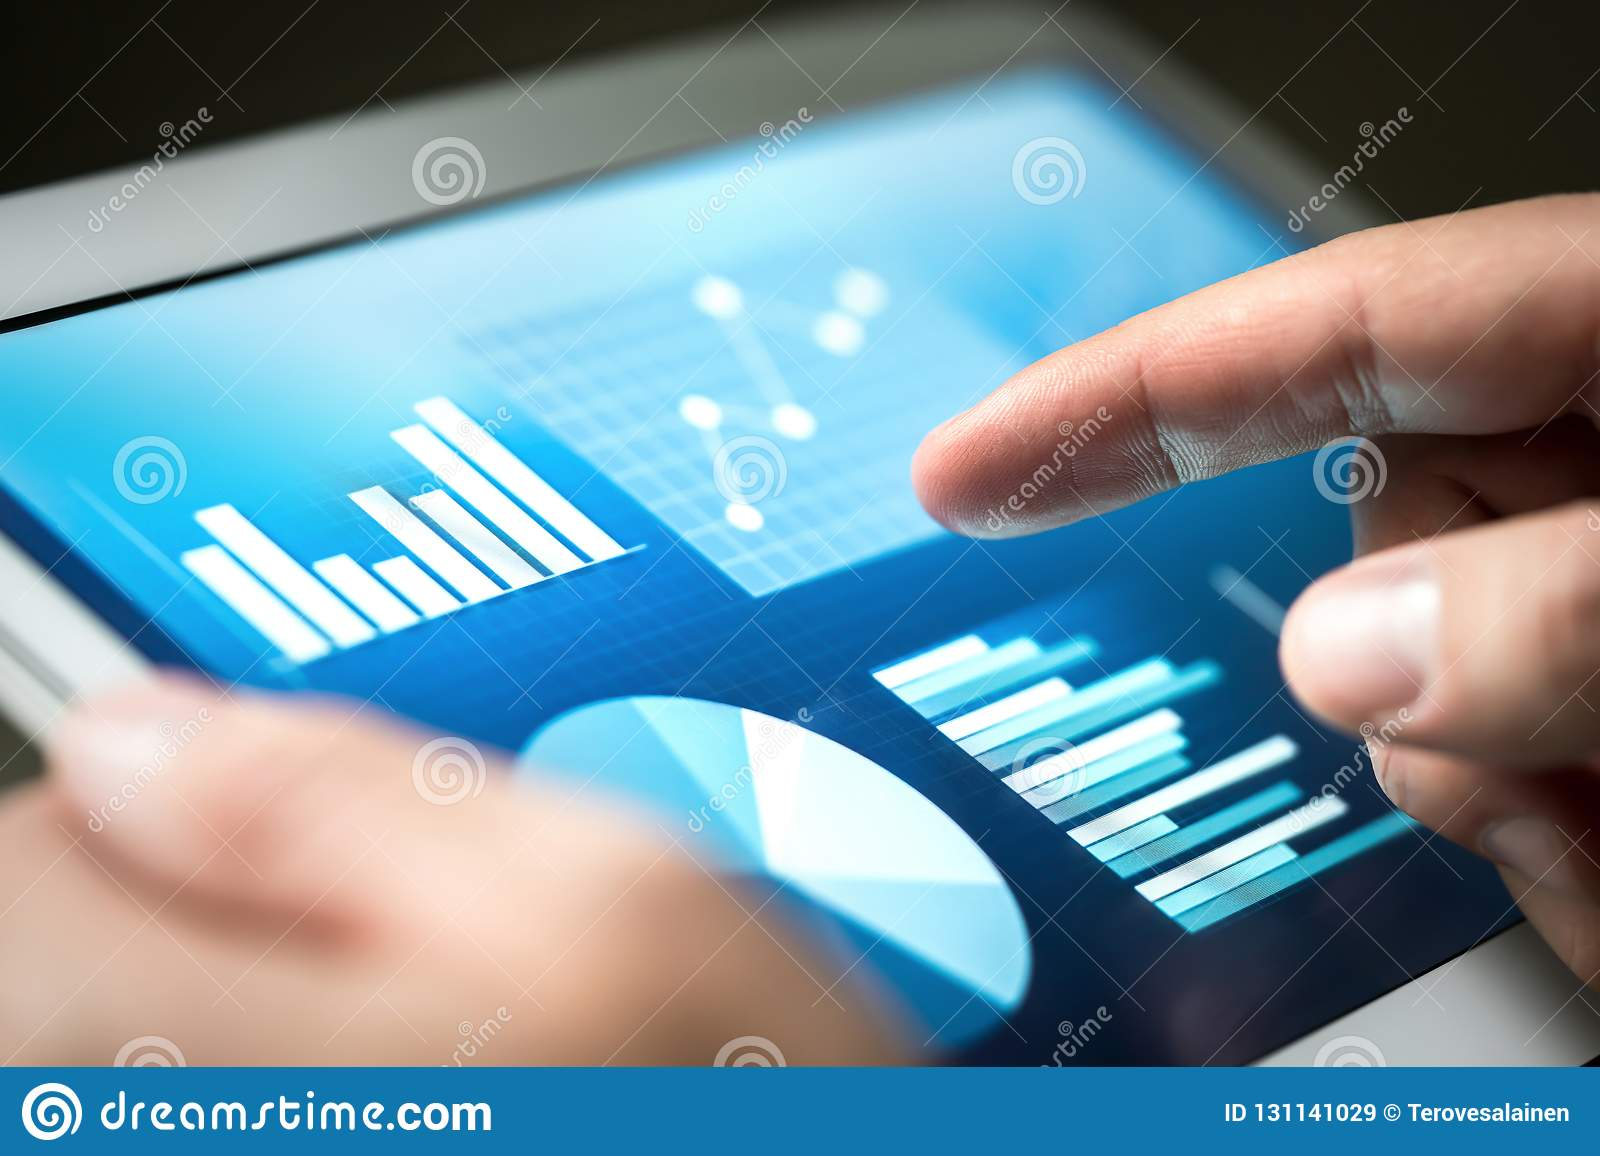 Statistics, graphs, trends and growth on tablet screen. Financia management and development with technology in business.